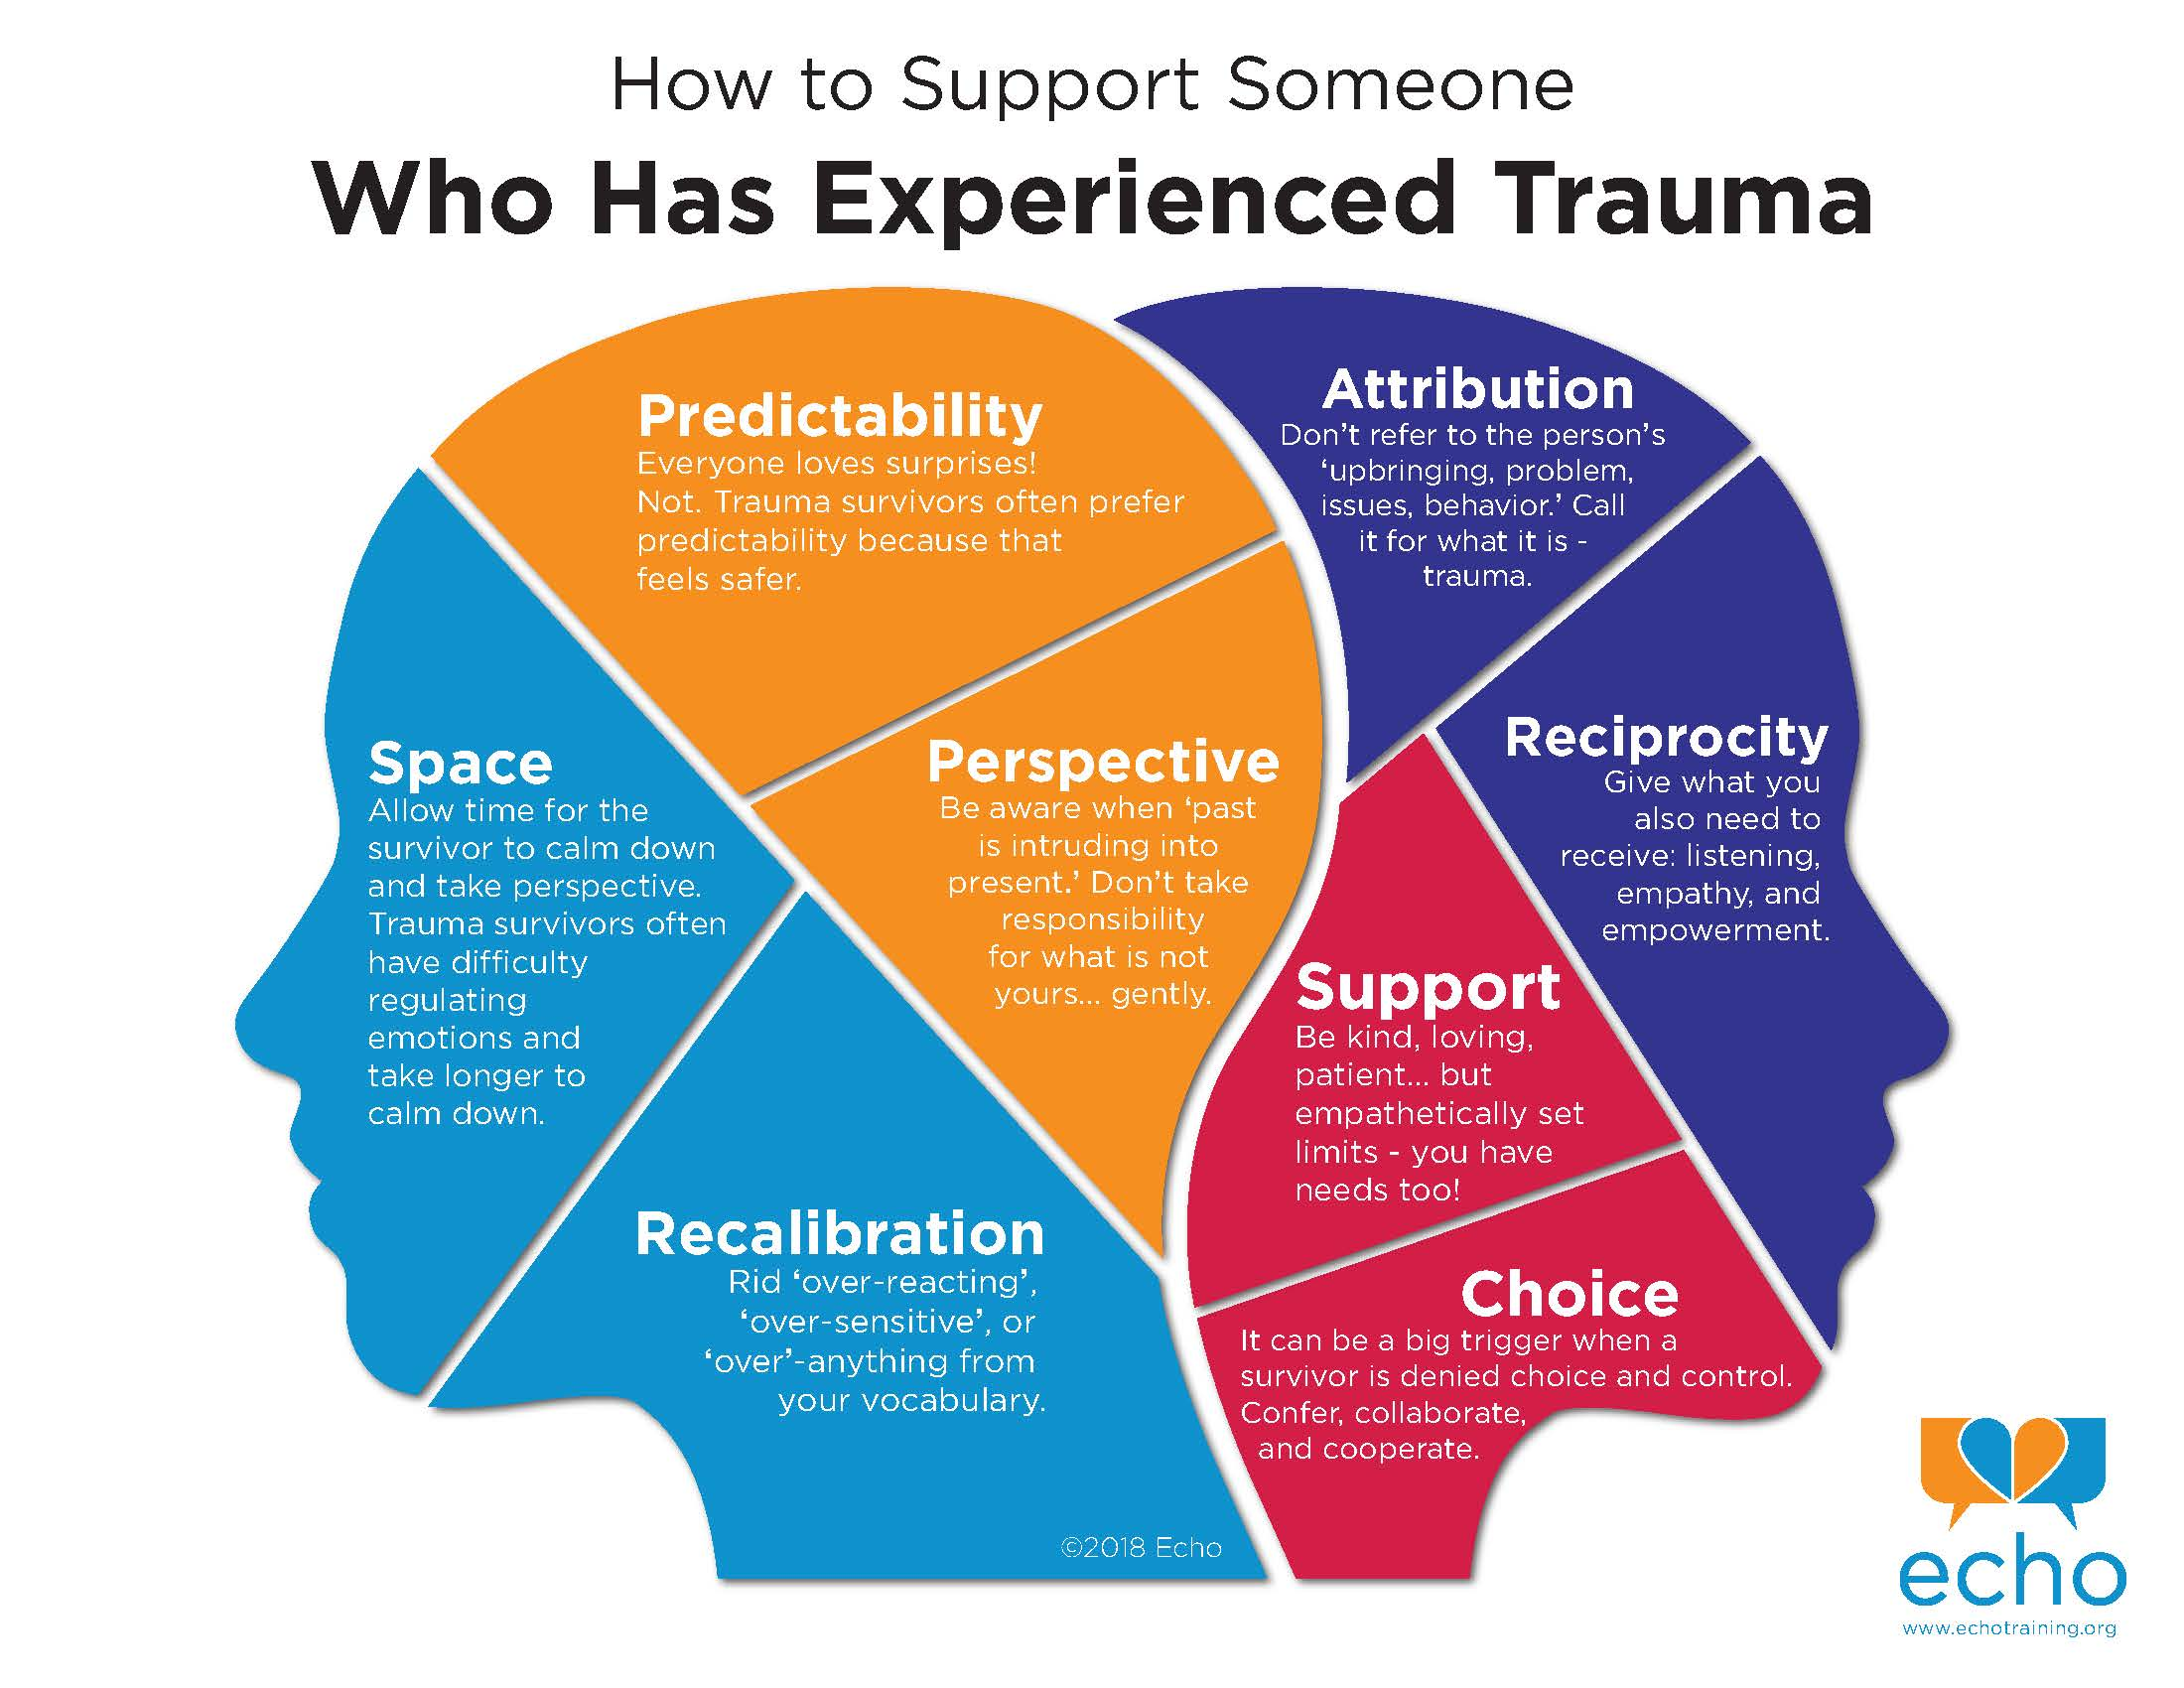 Two heads that are overlapped to show what someone with a trauma history might experience.